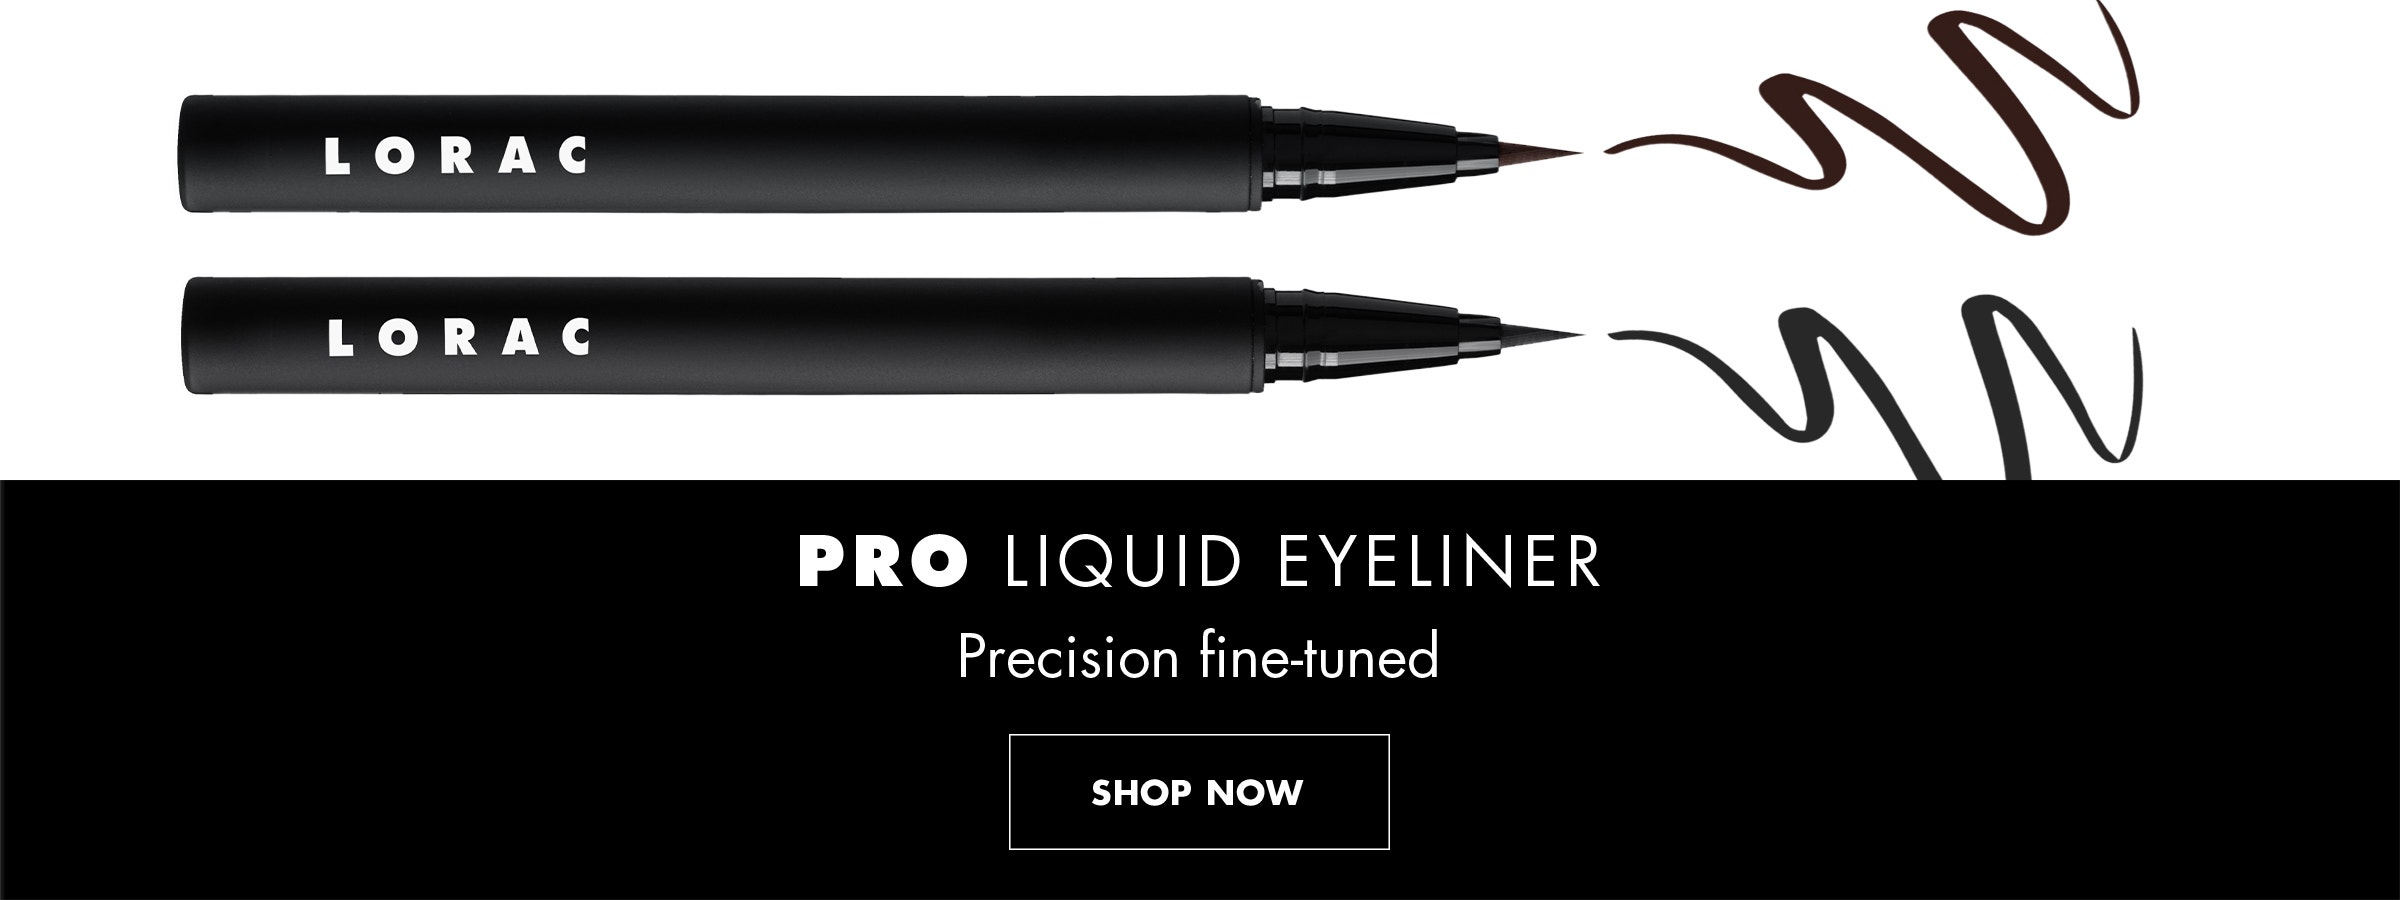 LORAC | PRO LIQUID EYELINER PRECISION FINE-TUNED | PRODUCTS OPEN ON A WHITE BACKGROUND | SHOP NOW